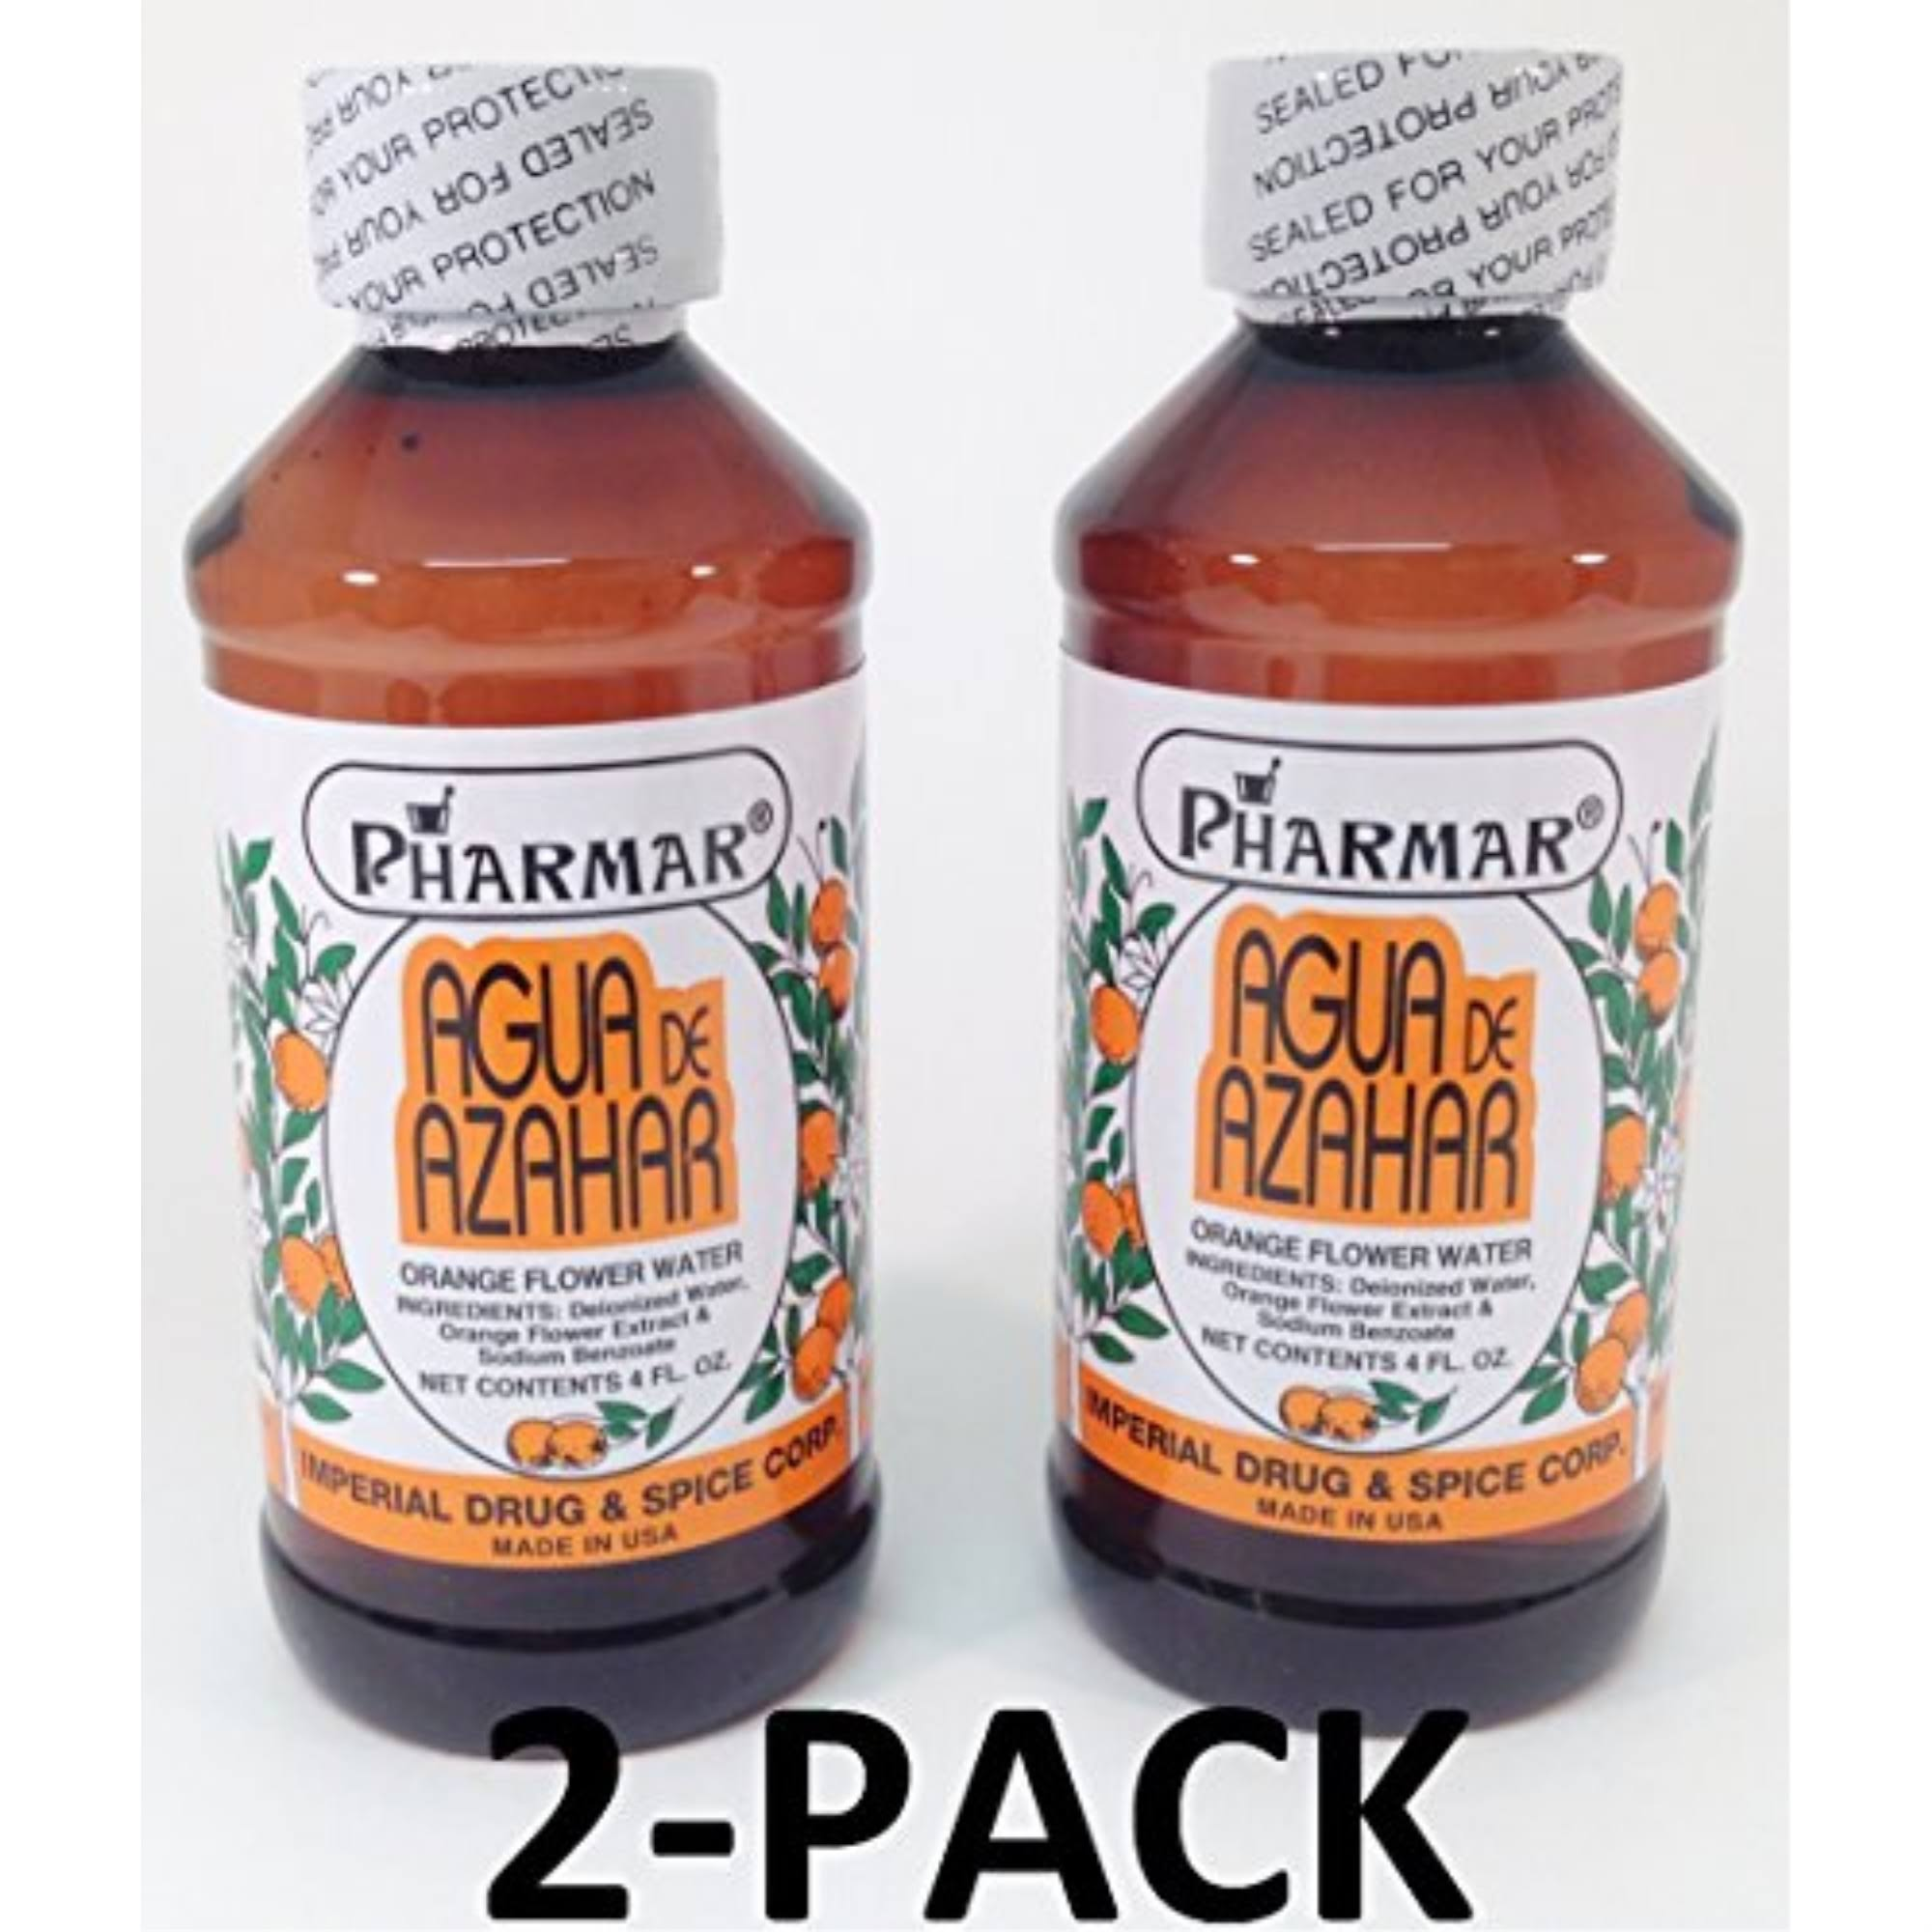 Pharmar Agua de Azahar Orange Flower Blossom Water Skin Care - 4oz, 2pk